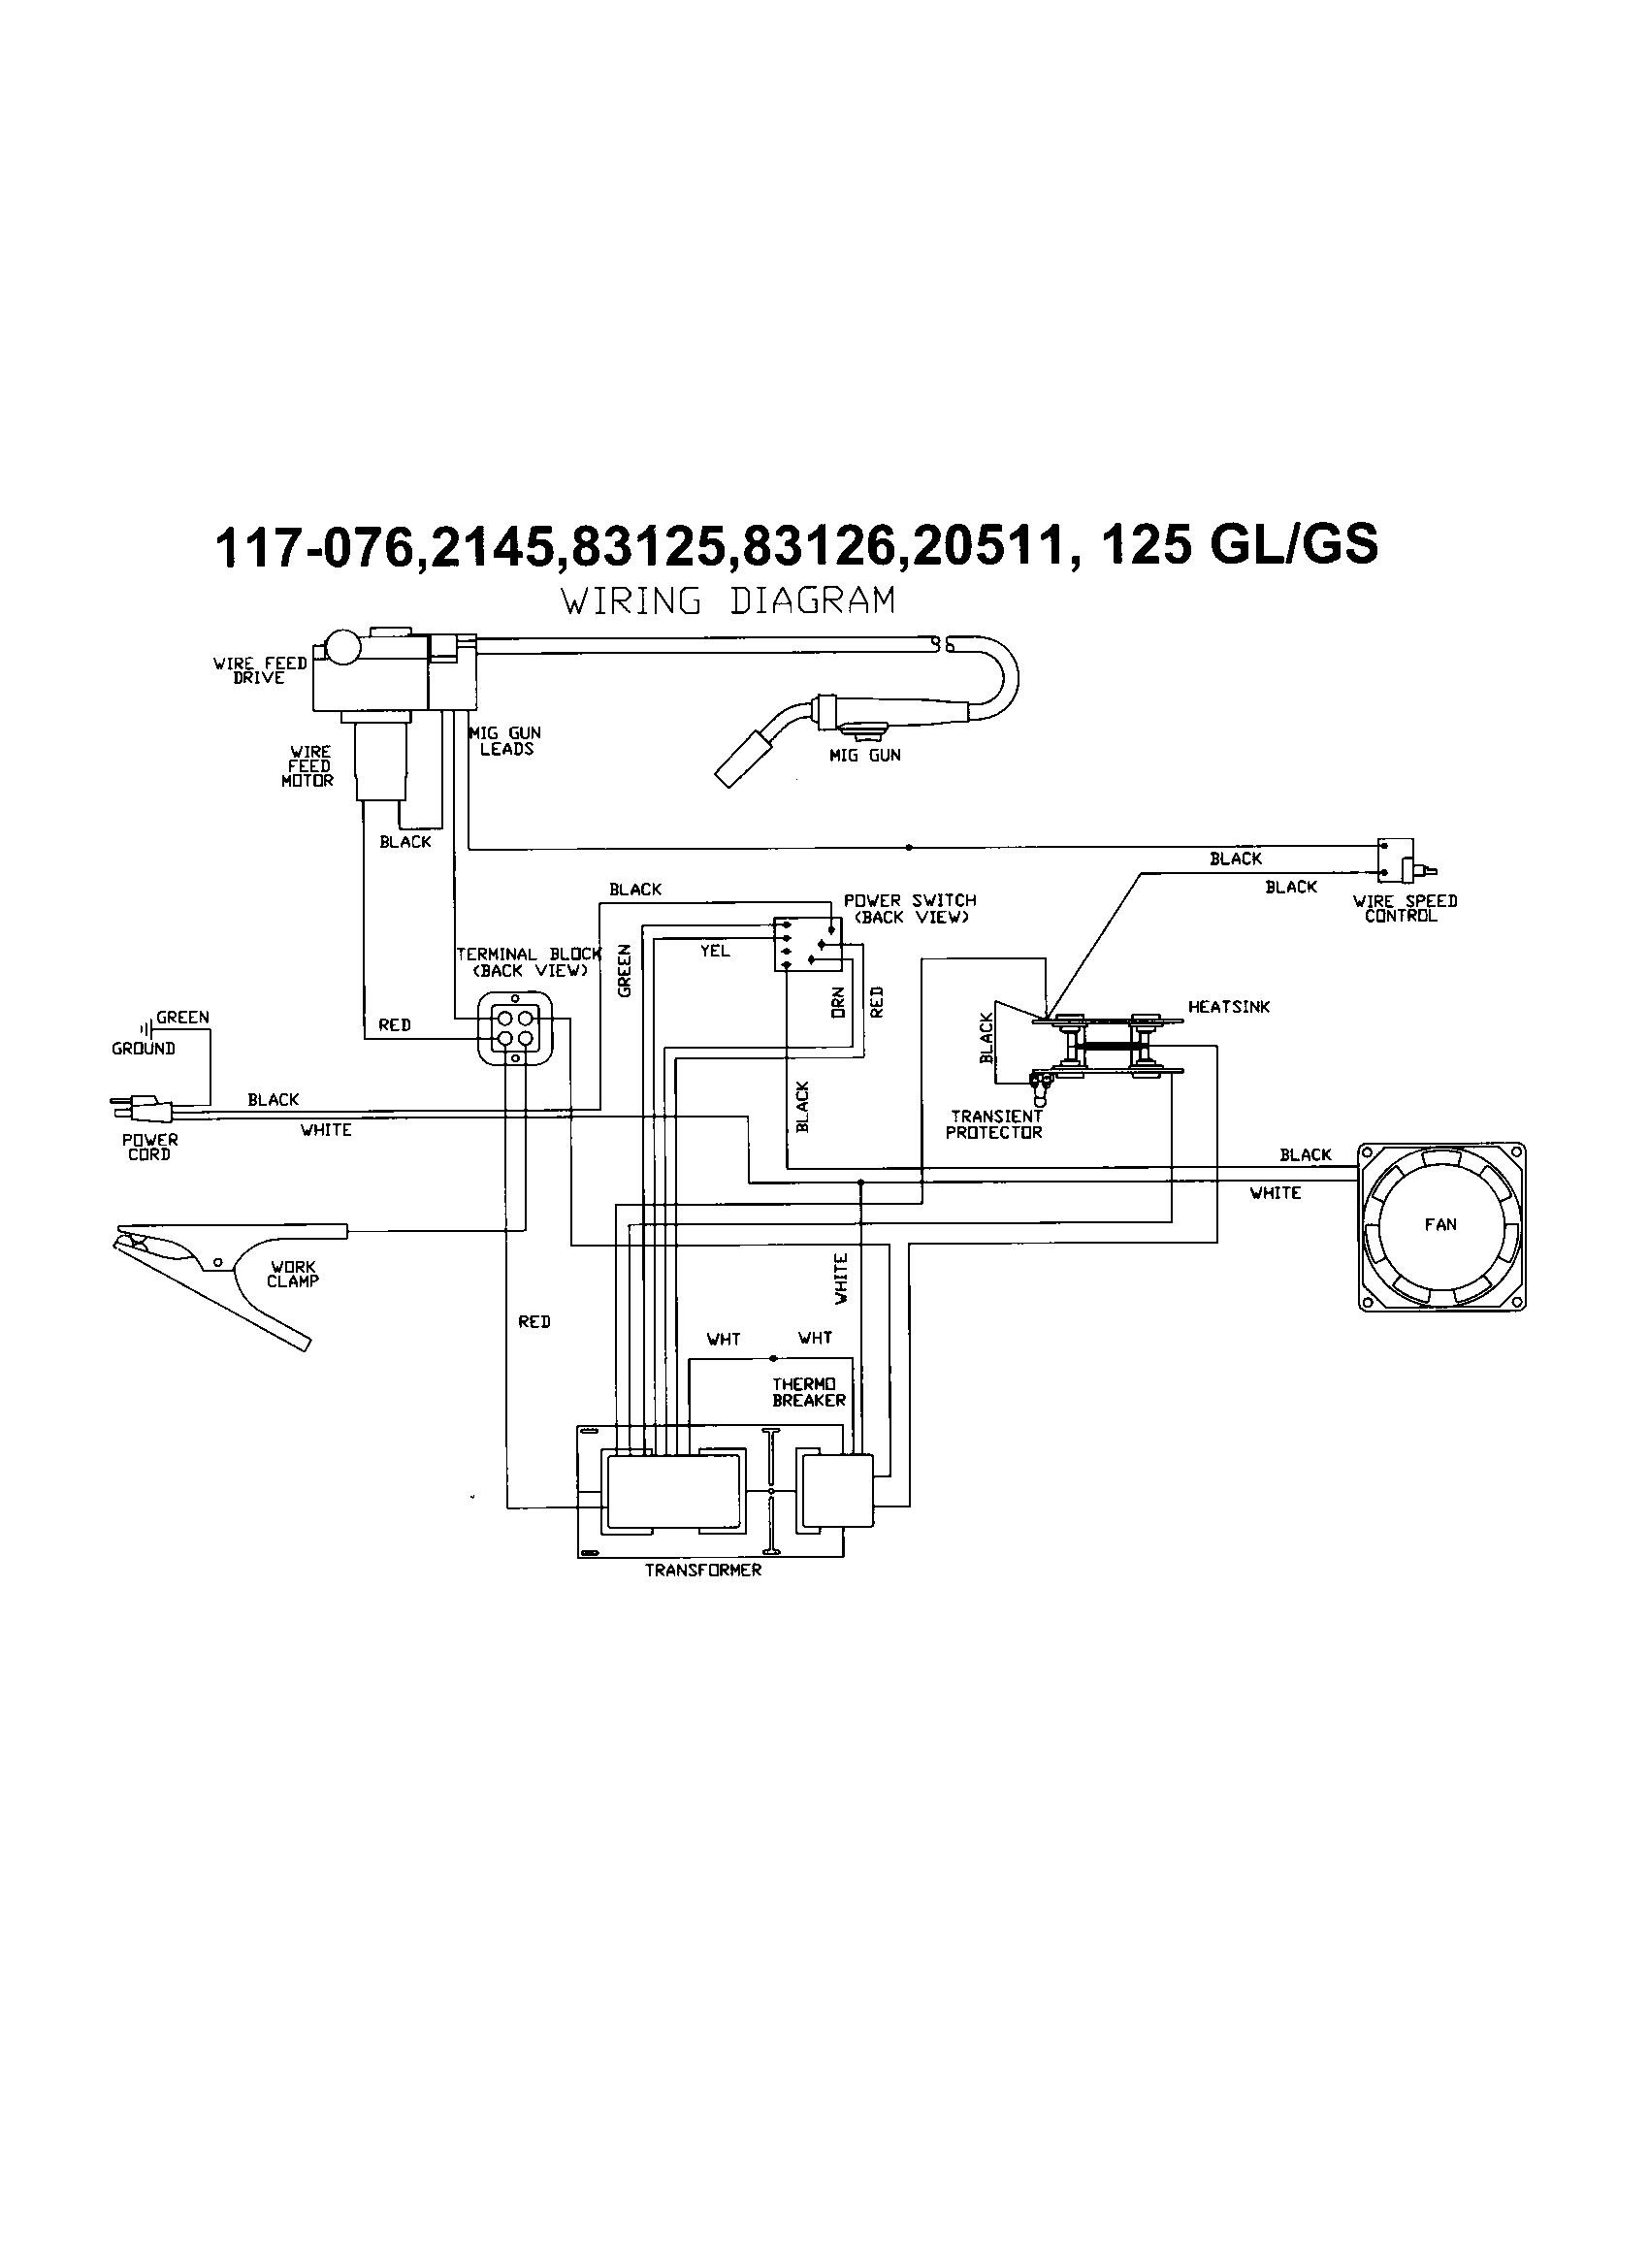 Inspiration Templates Lincoln Electric Welder Parts Diagram size